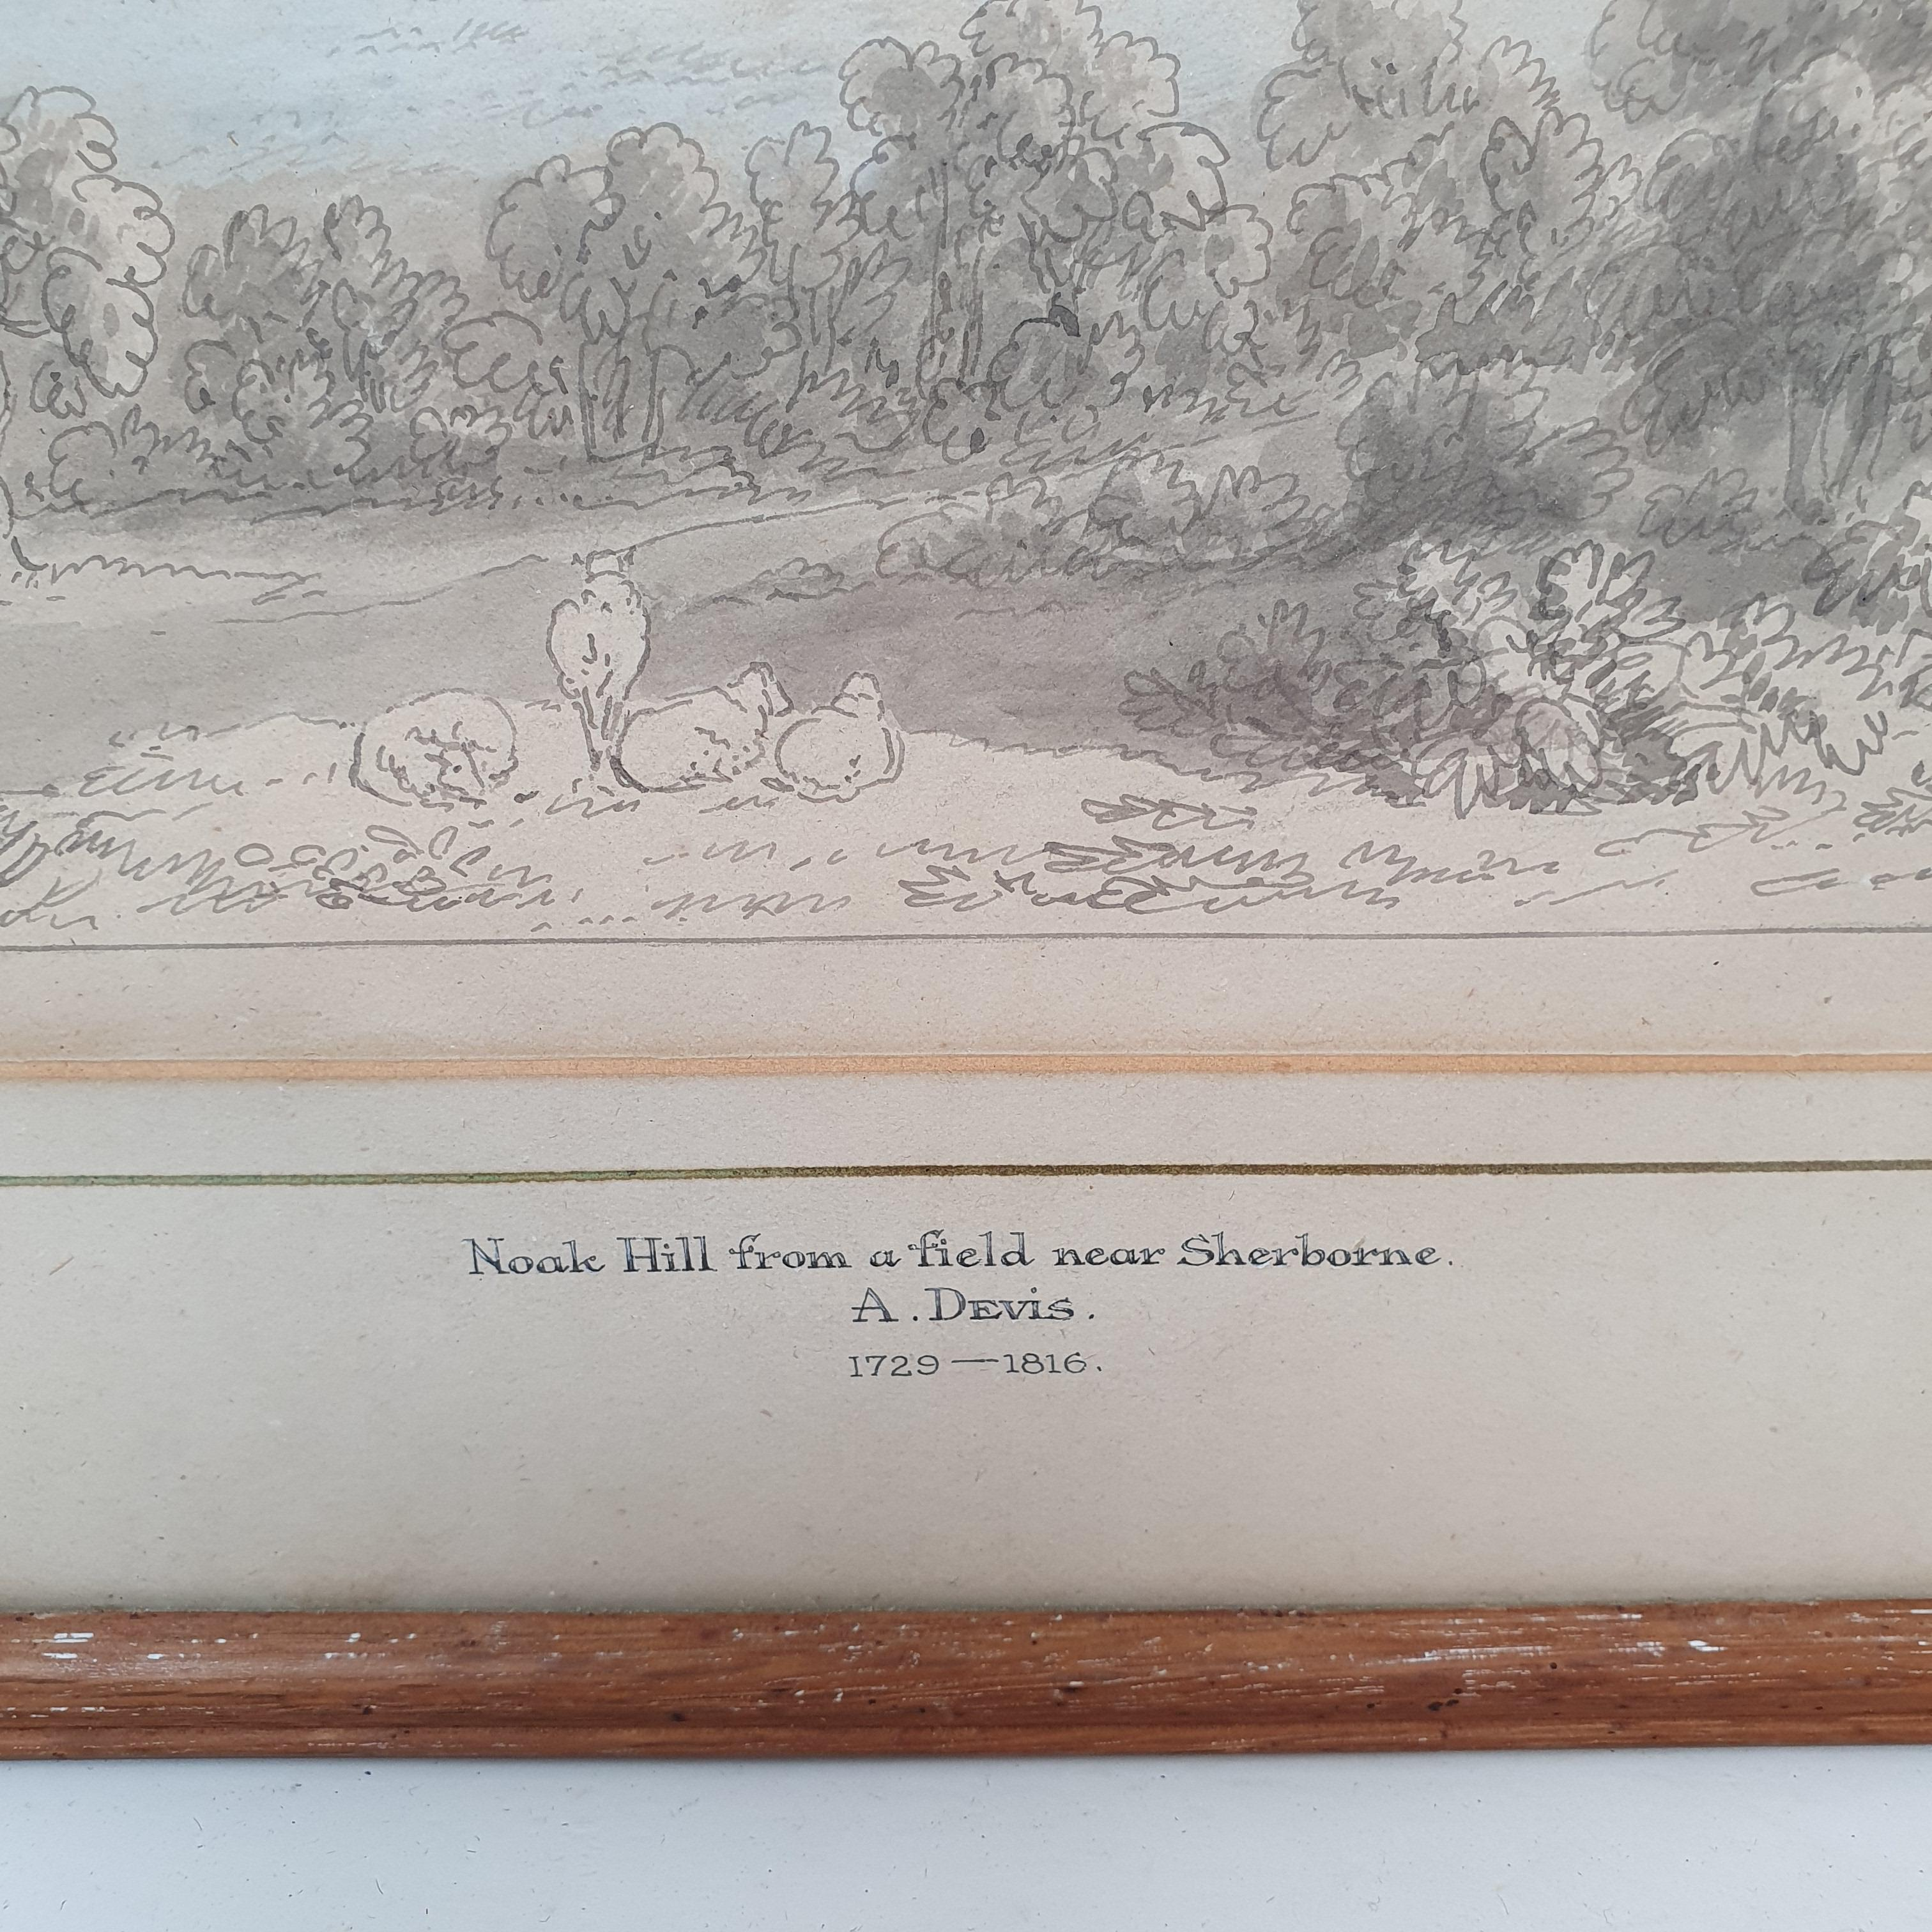 Anthony Thomas Devis (1729-1816/17), Noak Hill from a field near Sherborne, watercolour and - Image 3 of 5